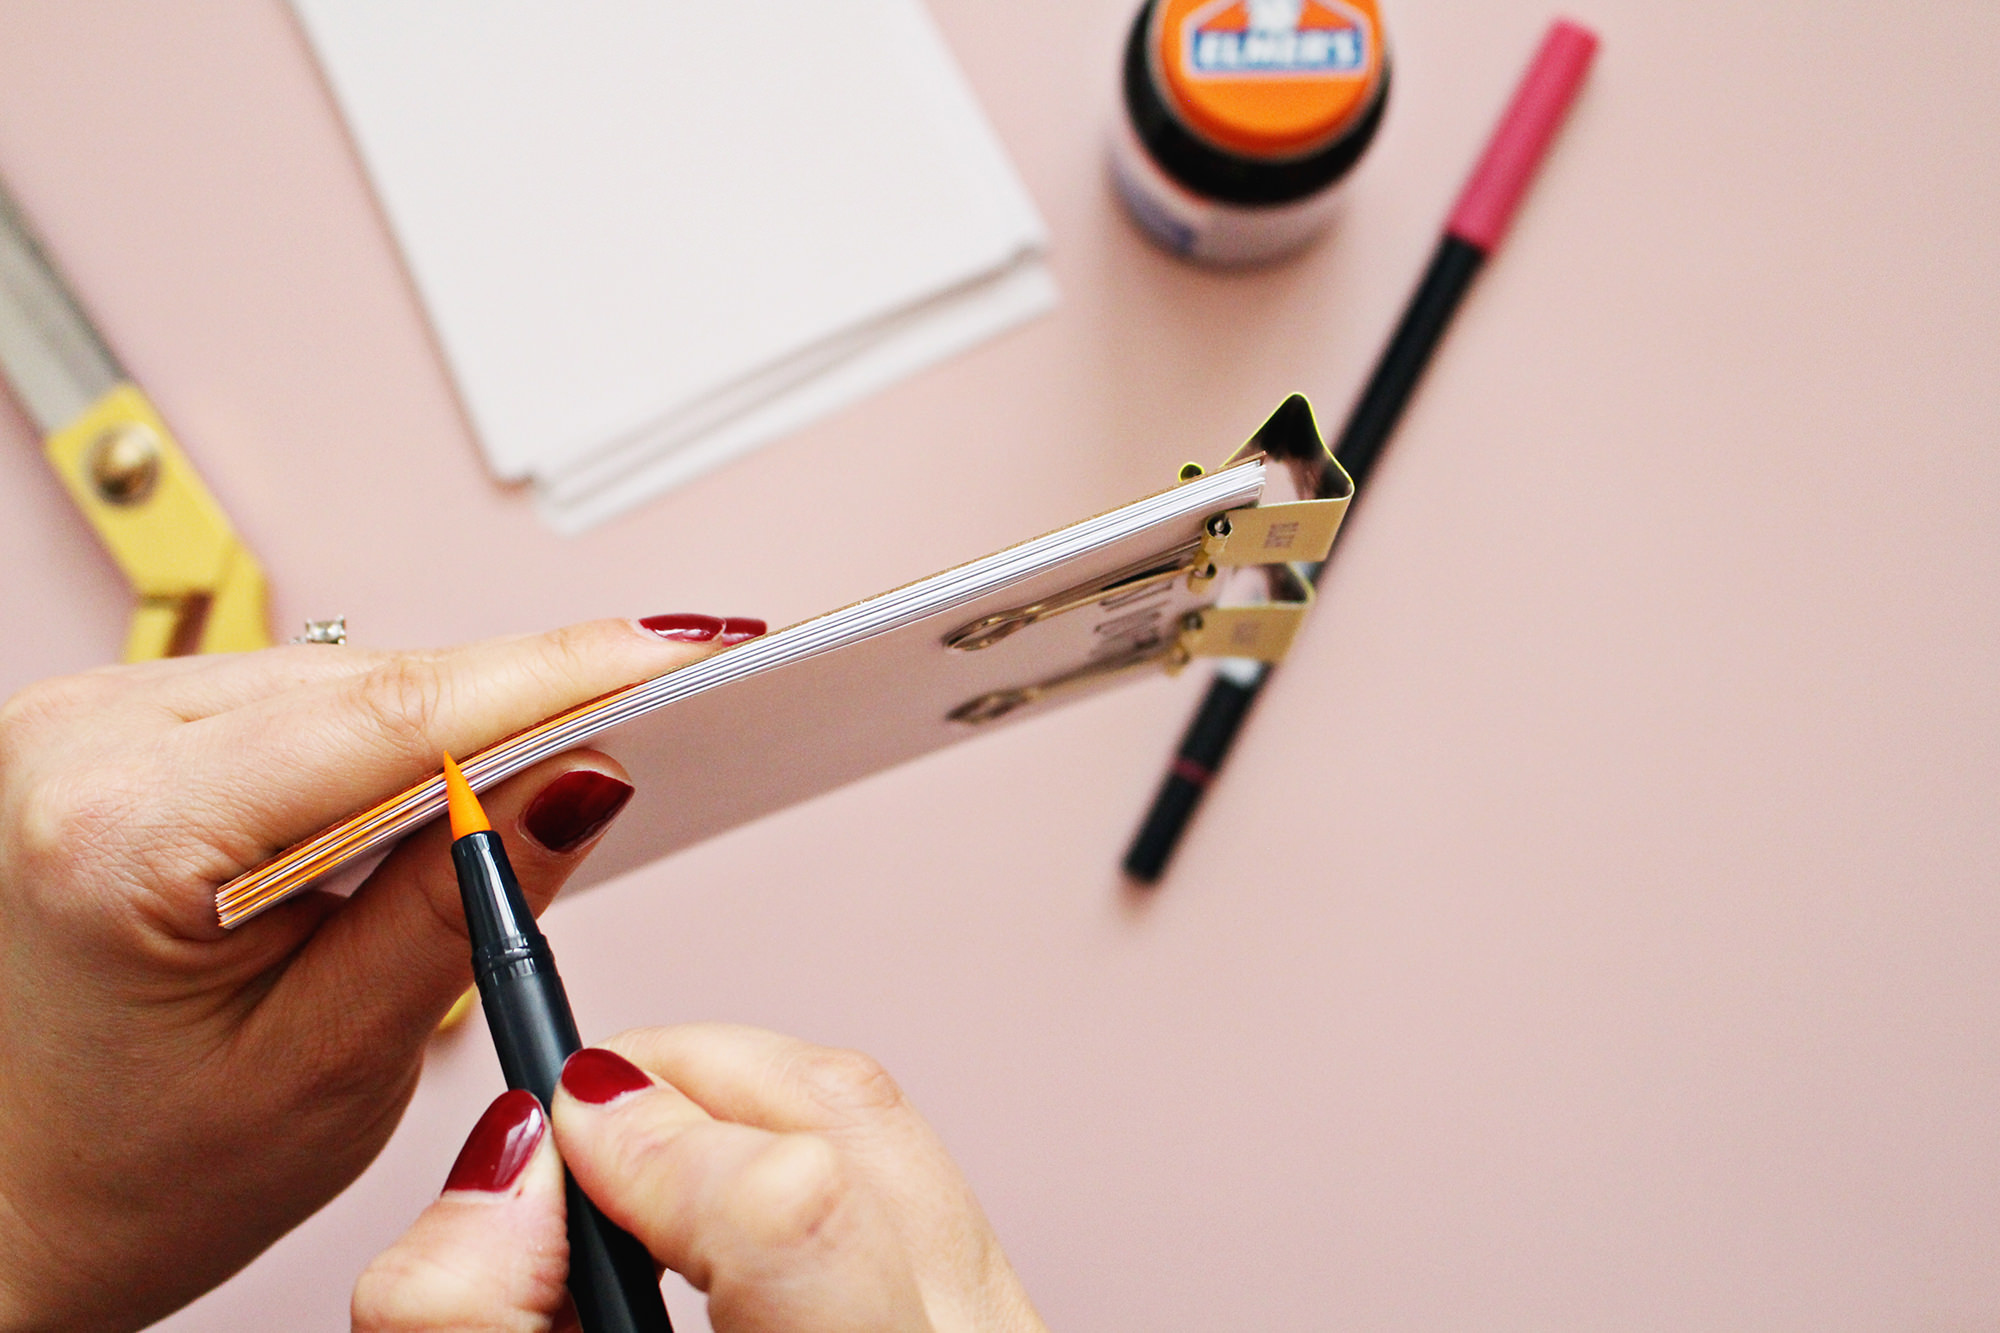 For an extra pop of color, use a marker to color the edges of the pages of your DIY notepad